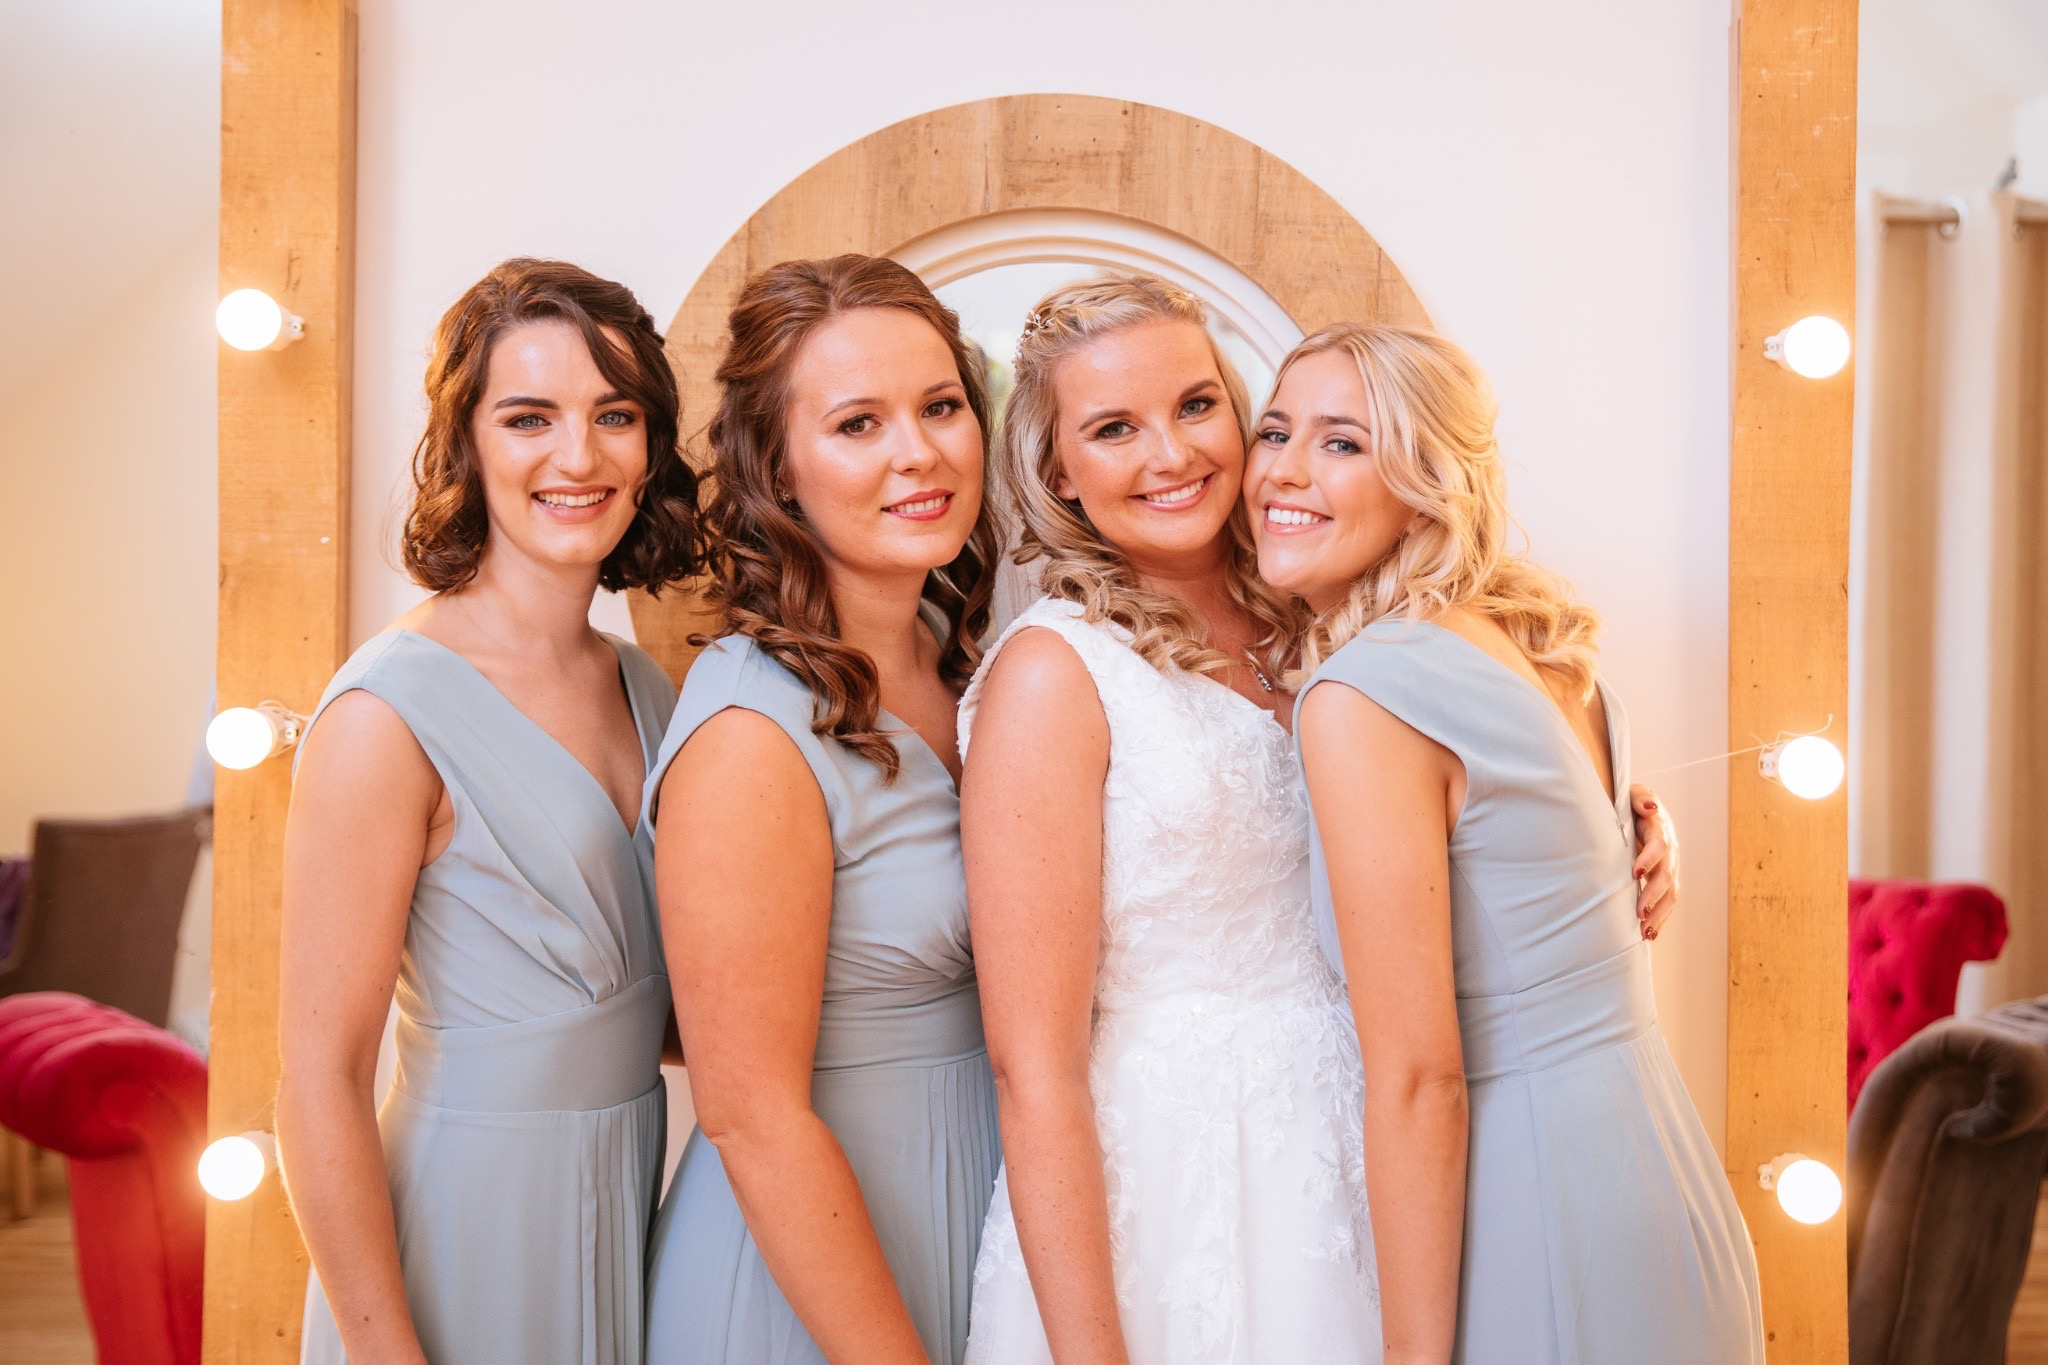 bride-and-bridesmaids-on-wedding-day-in-London